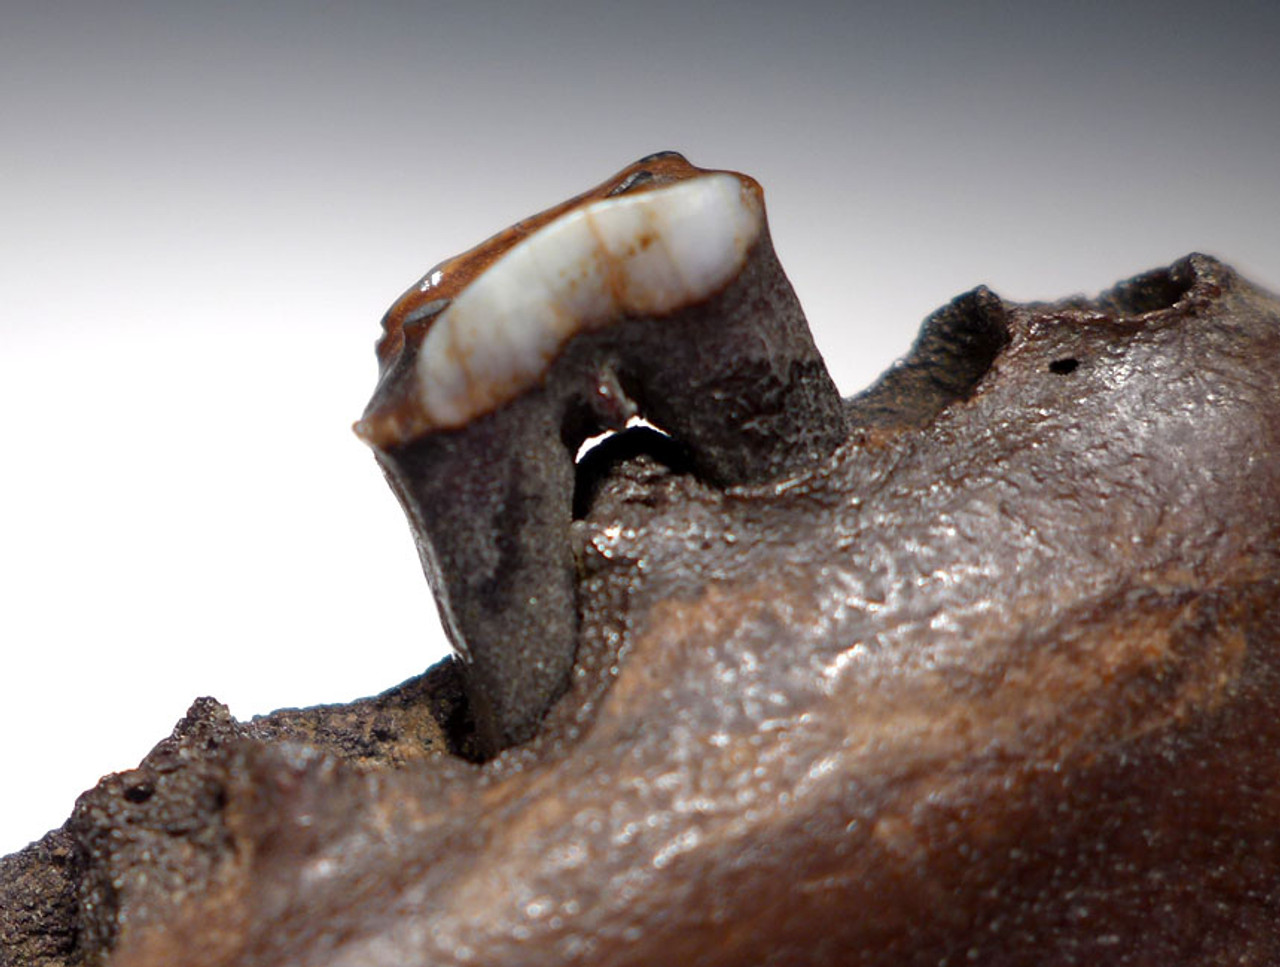 LMX099 - SUPER RARE EUROPEAN ICE AGE FOSSIL REINDEER MANDIBLE WITH HUMAN BUTCHERING CUTS